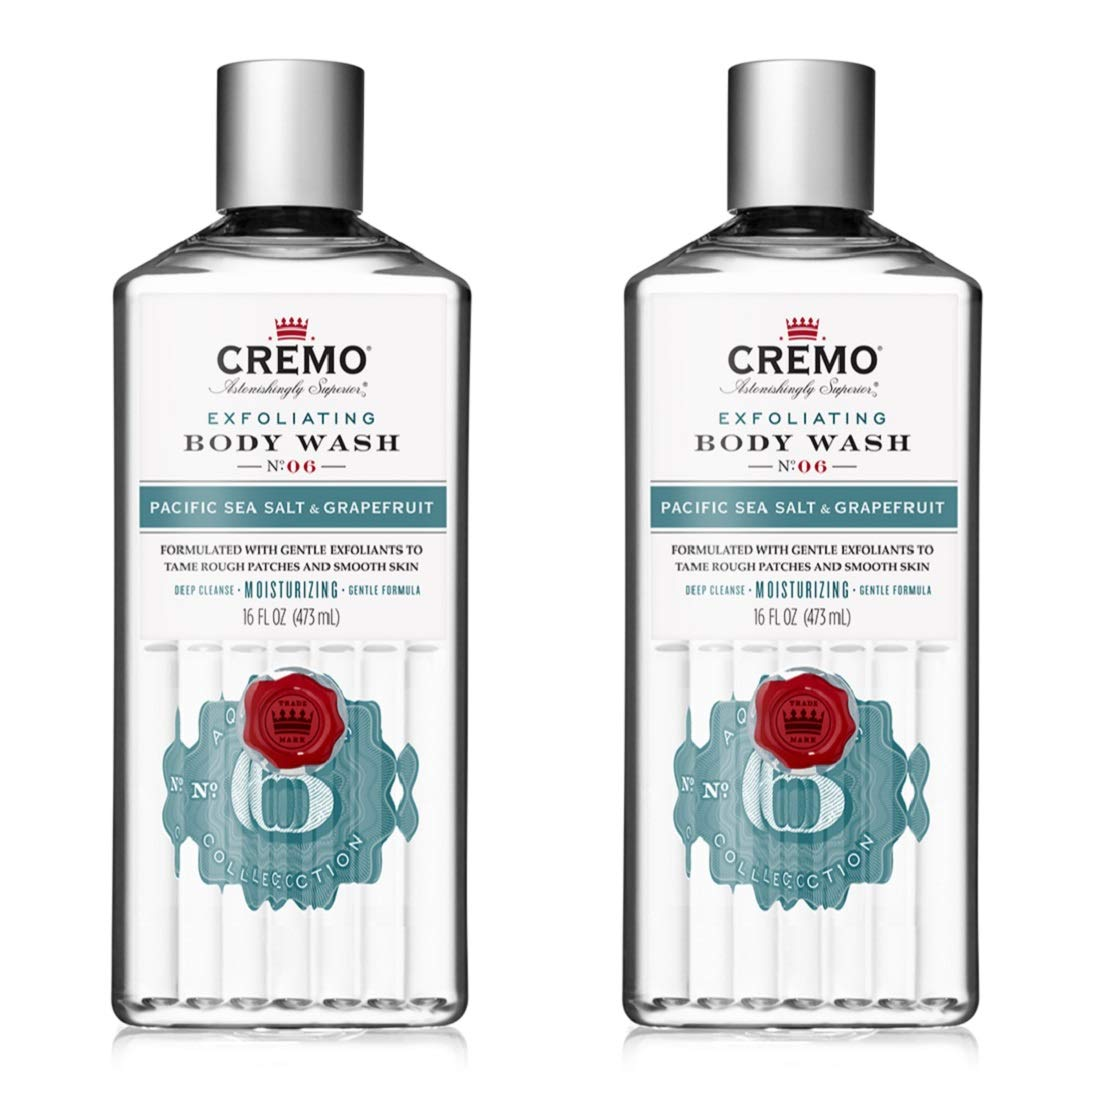 Cremo Exfoliating Body Wash, Pacific Sea Salt & Grapefruit, Exotic Scent Inspired By The Trade Winds Of The South Pacific, 16 Fl Oz, Pack of 2